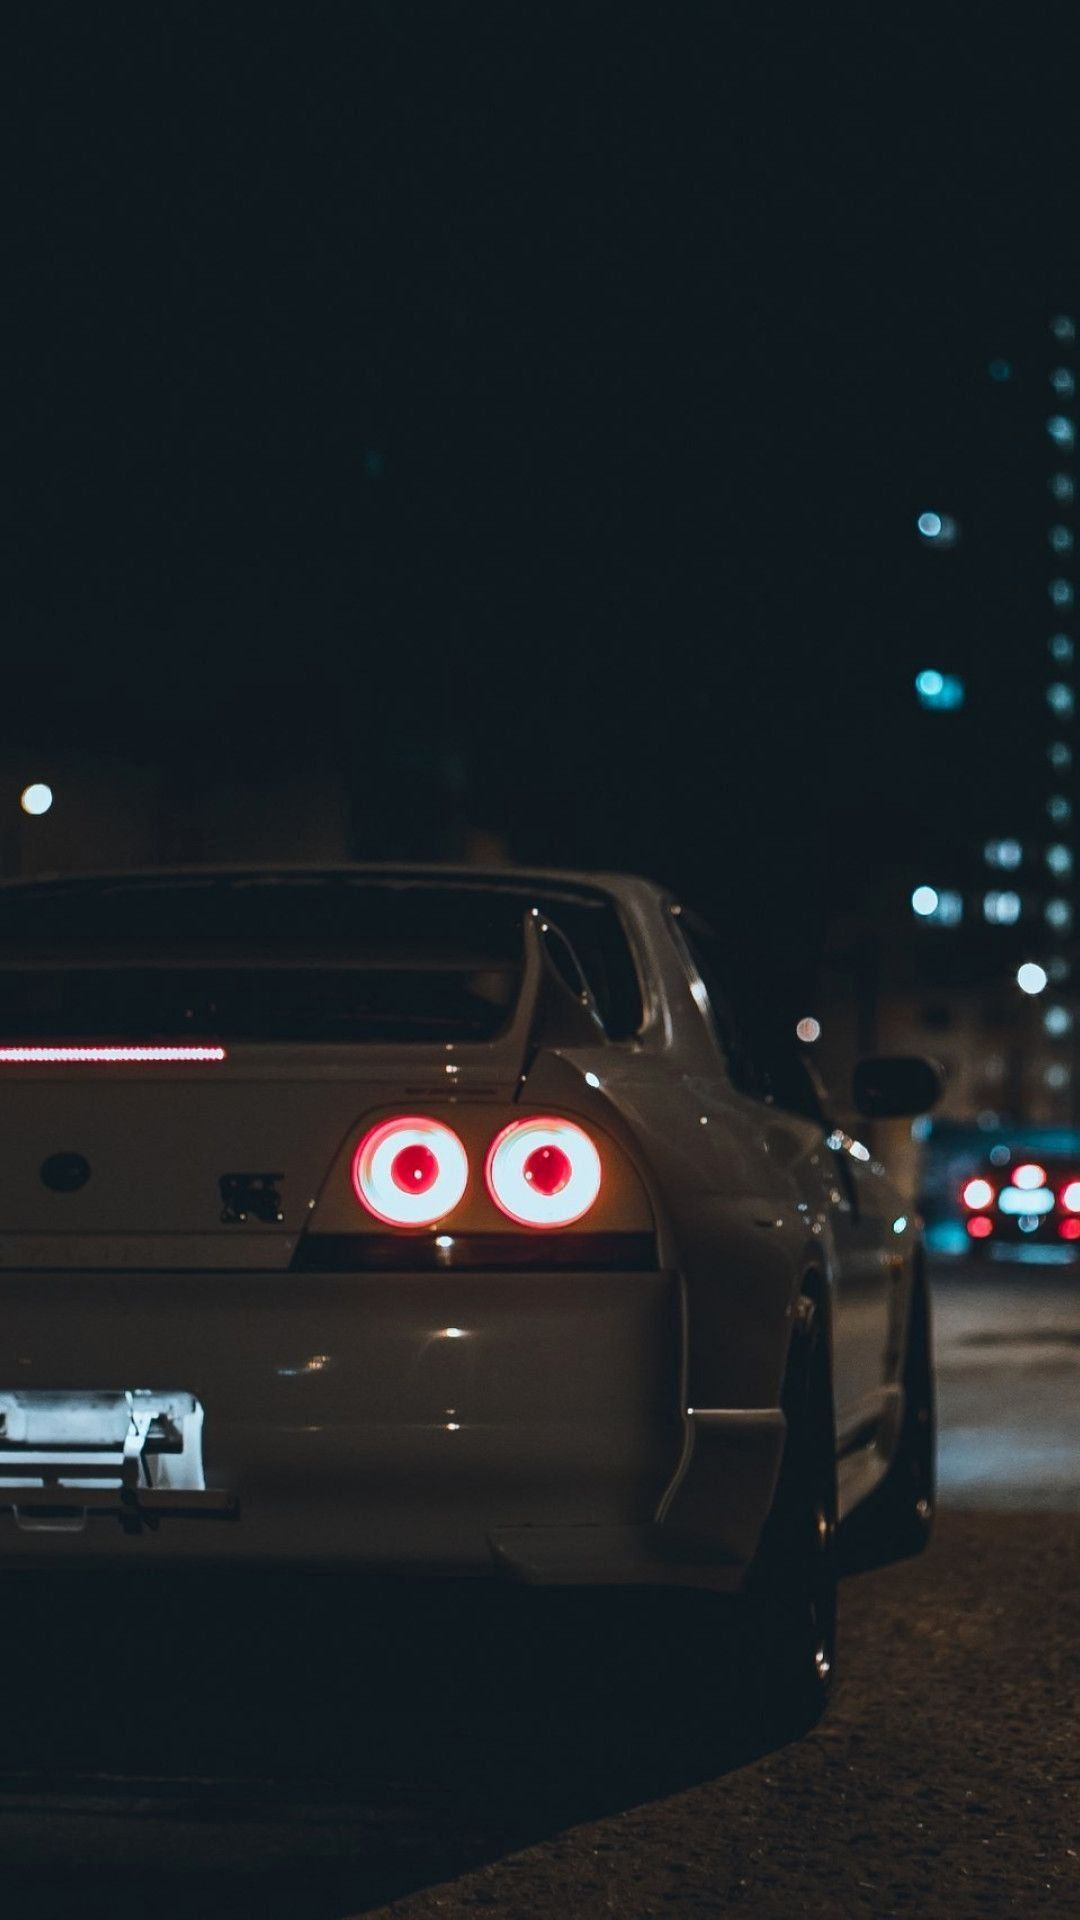 Aesthetic Car Pictures Wallpapers Wallpaper Cave